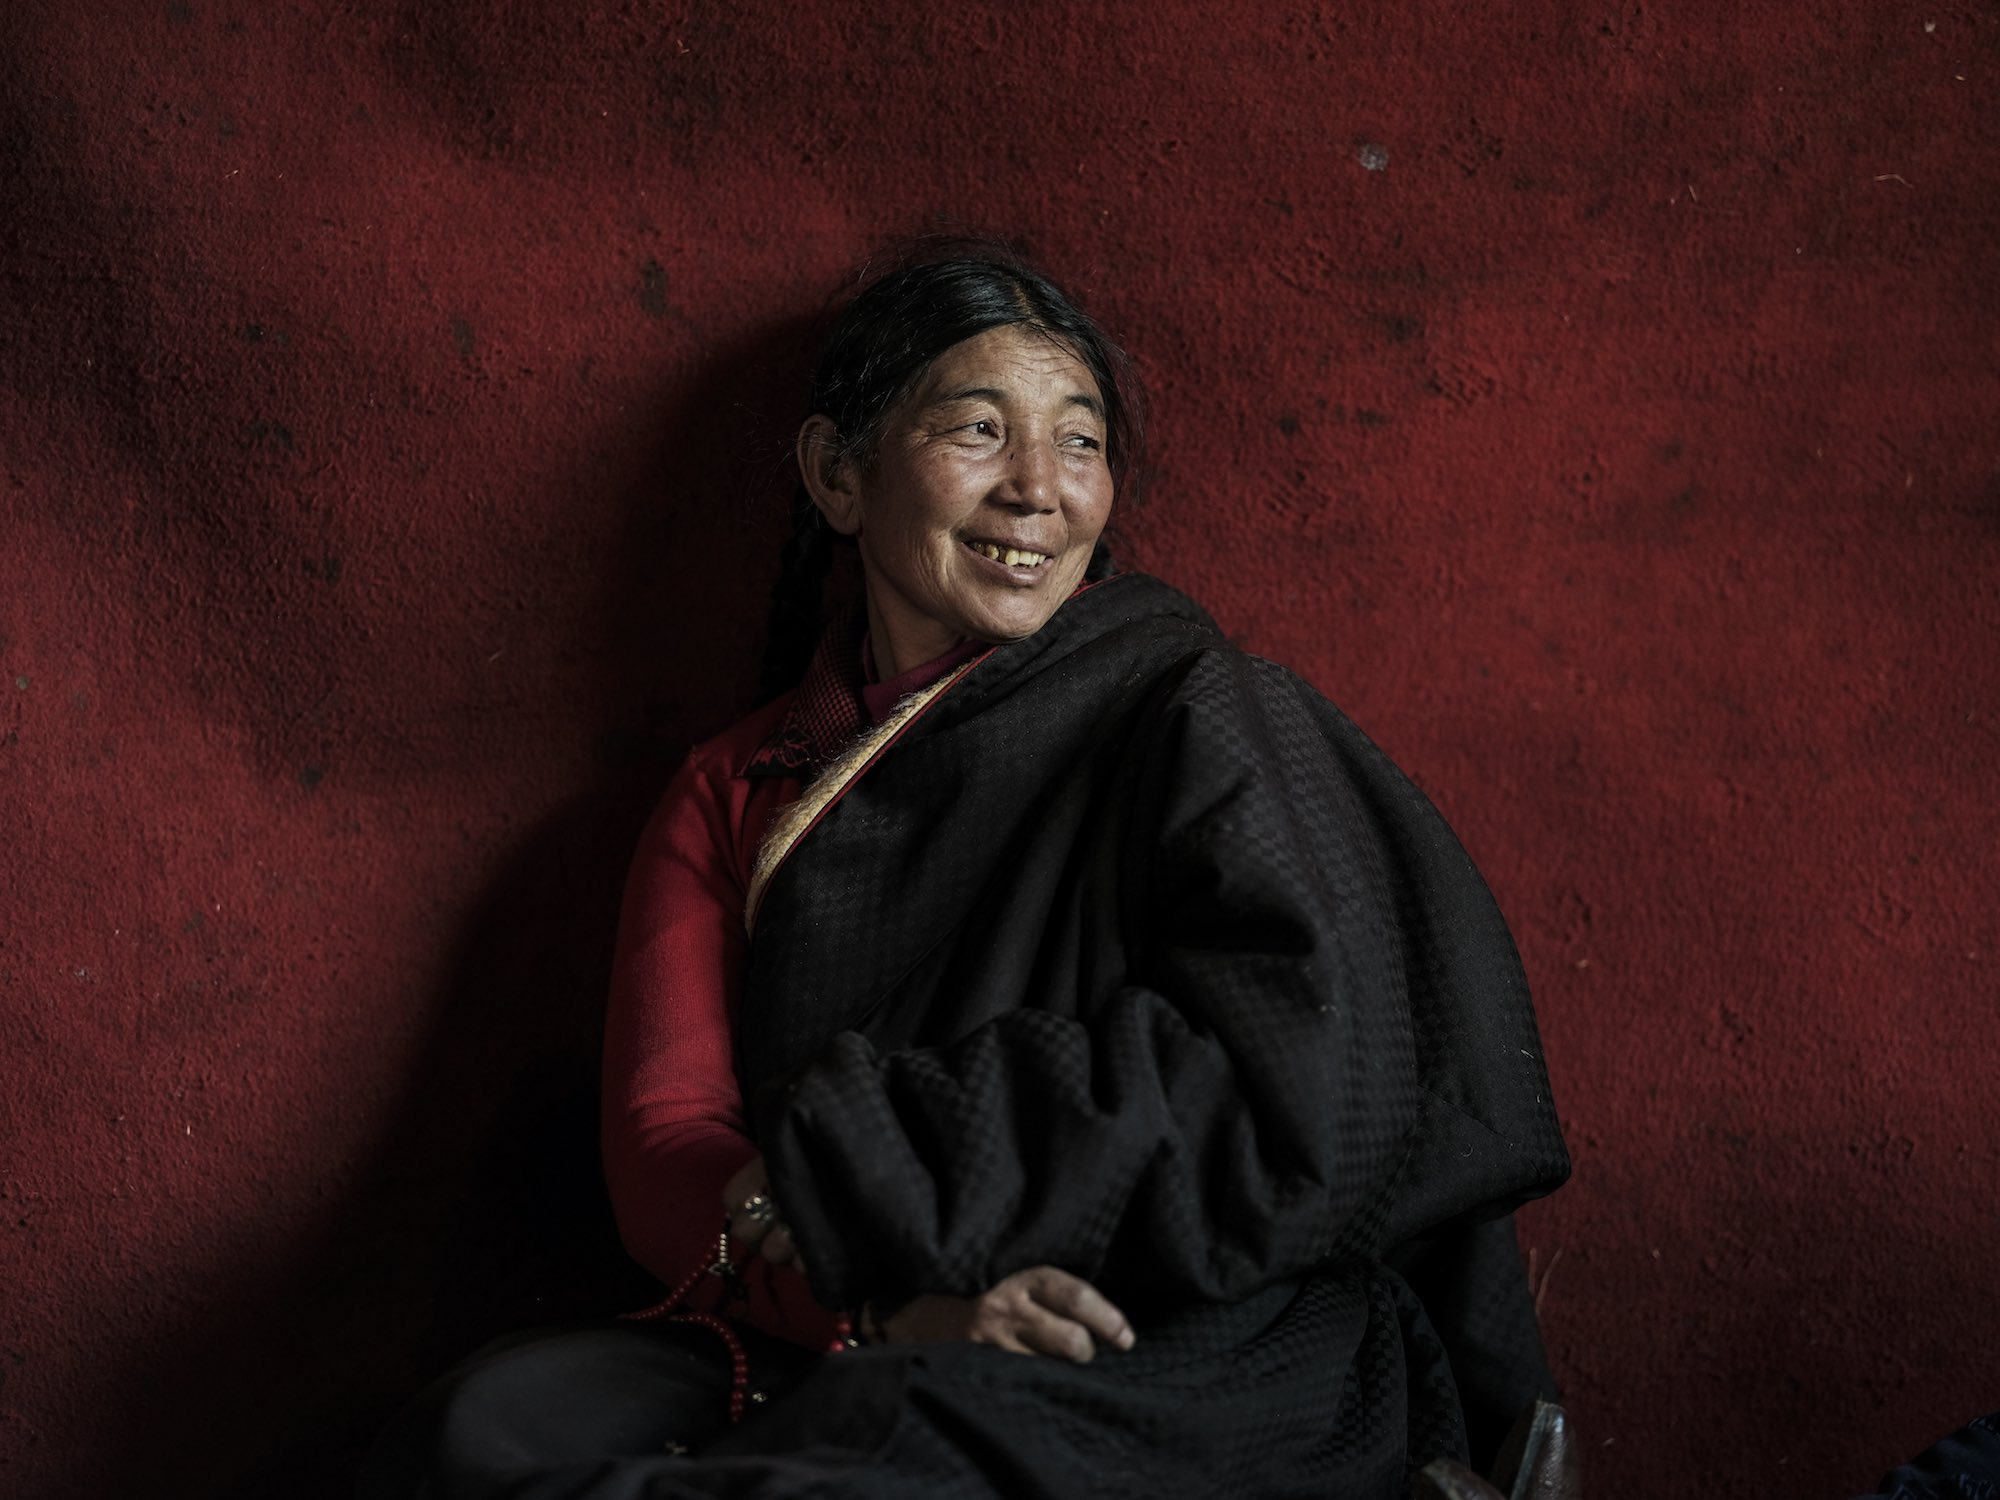 Tibet red wall china Commercial Editorial Portraiture Documentary Photographer fujifilm Director Singapore Jose Jeuland photography fashion